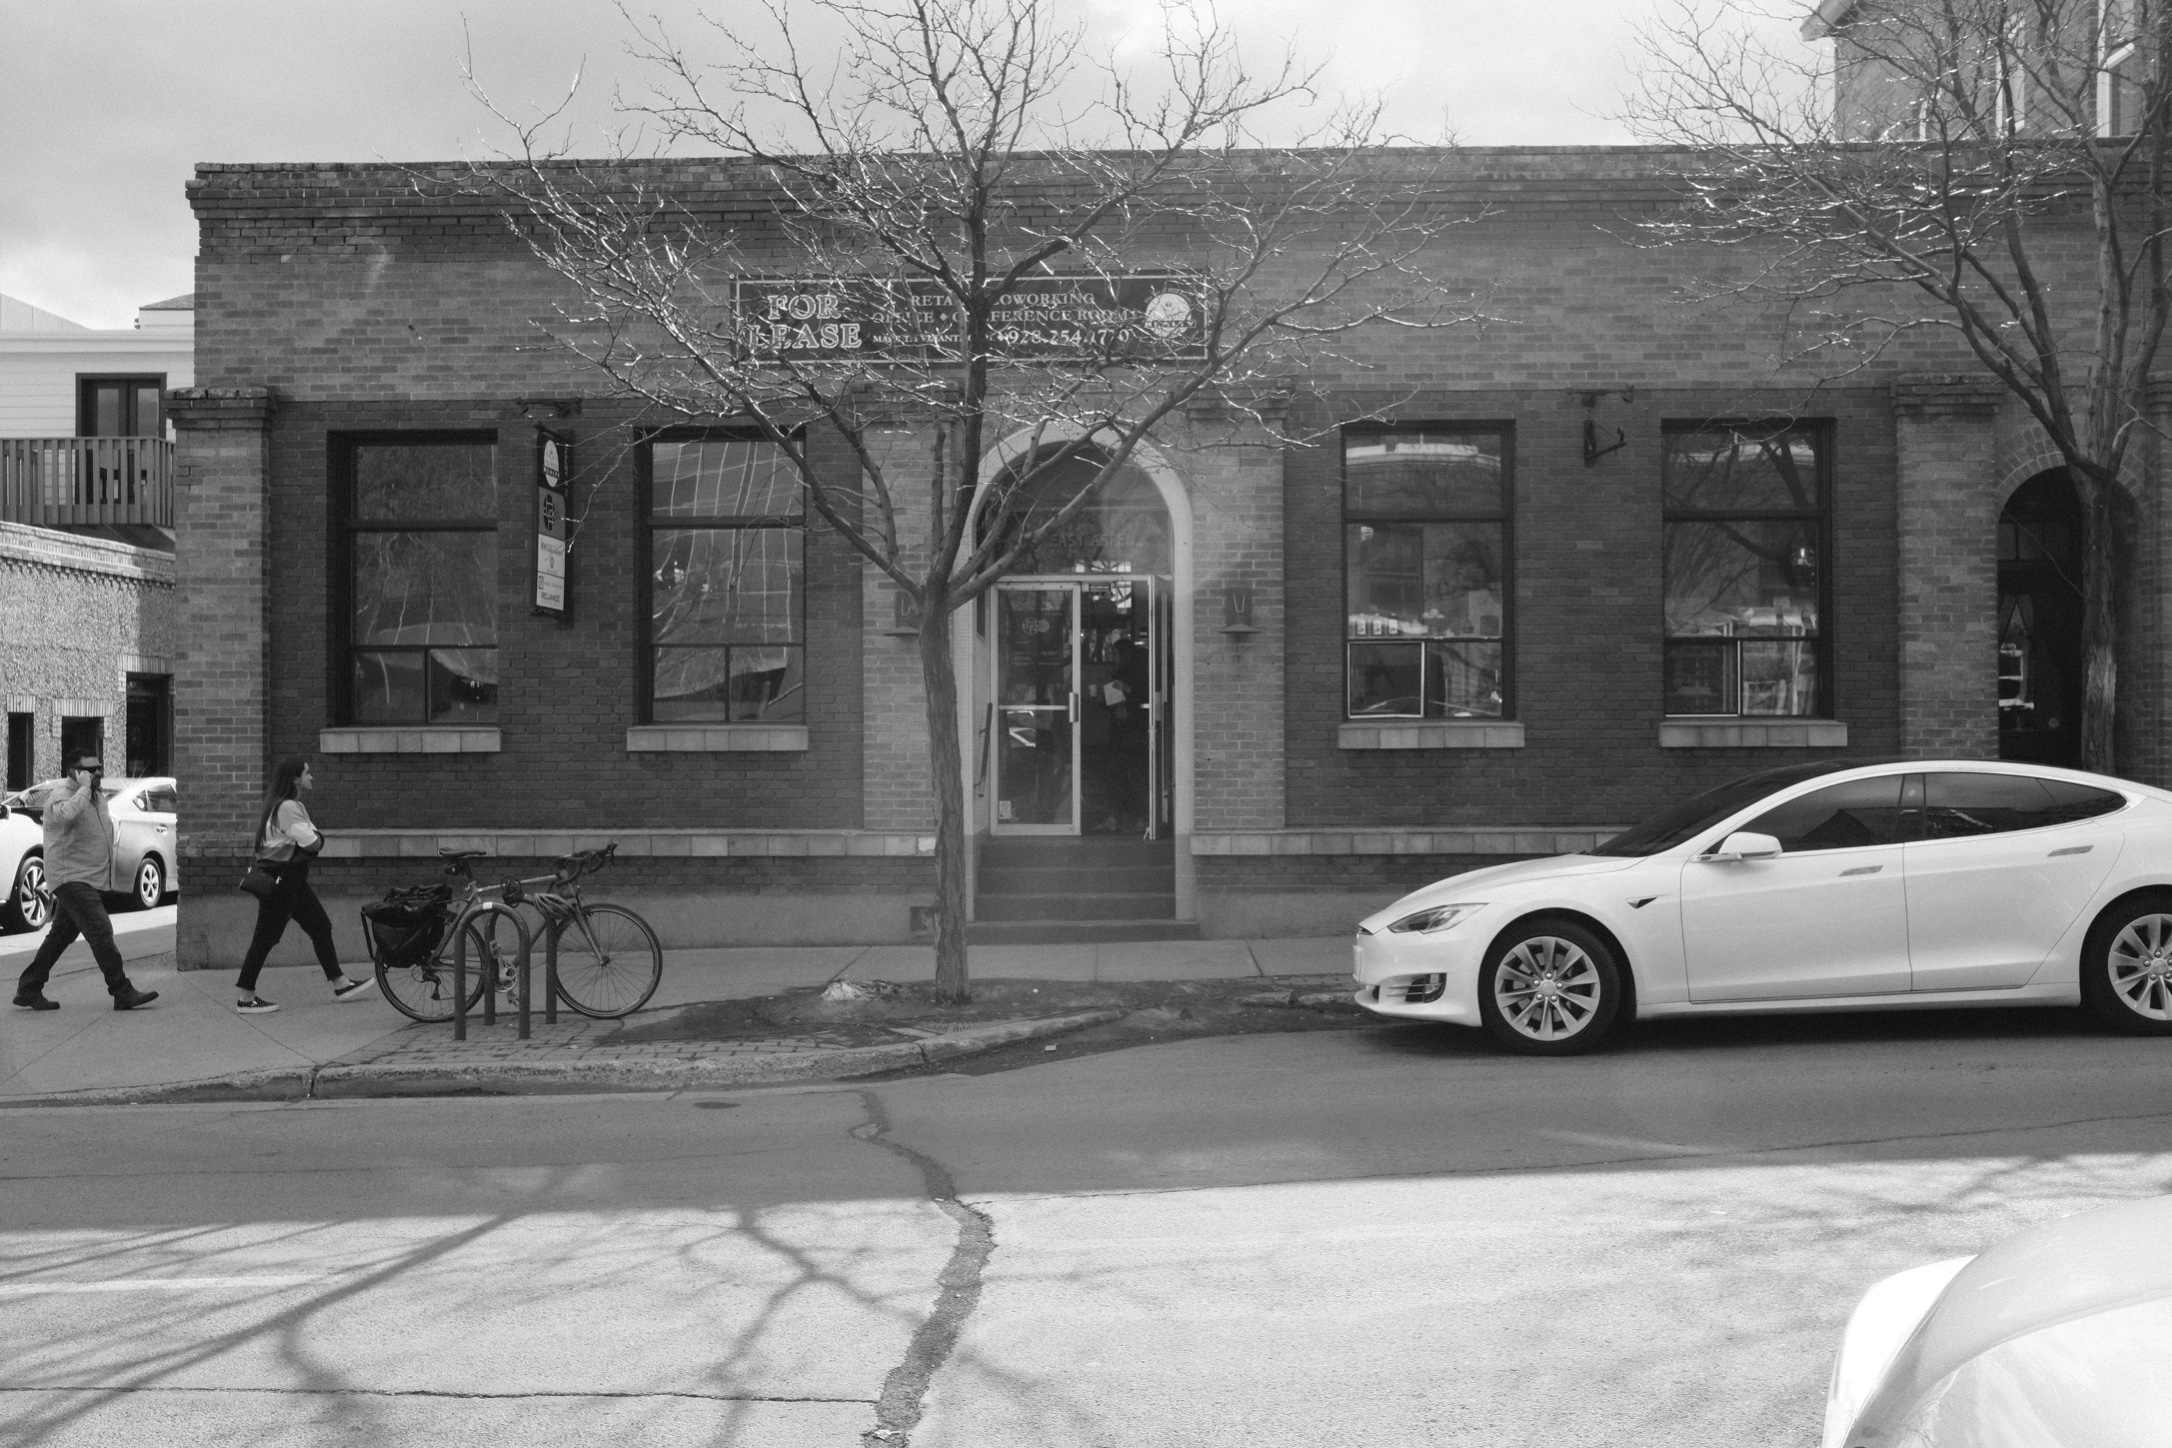 Black and white image of an unassuming brick building